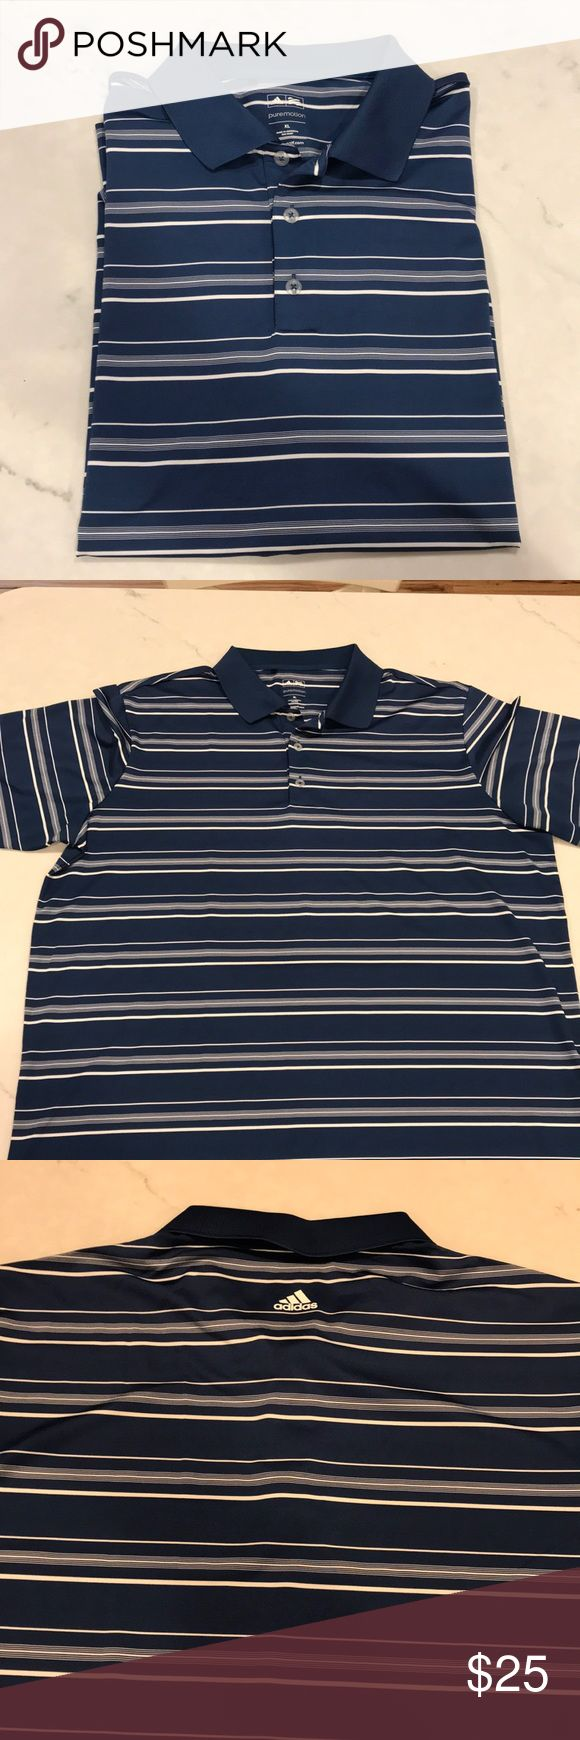 Men's Adidas Golf / Polo Shirt Navy and White striped men's golf shirt. Excellent condition. Like new. adidas Shirts Polos